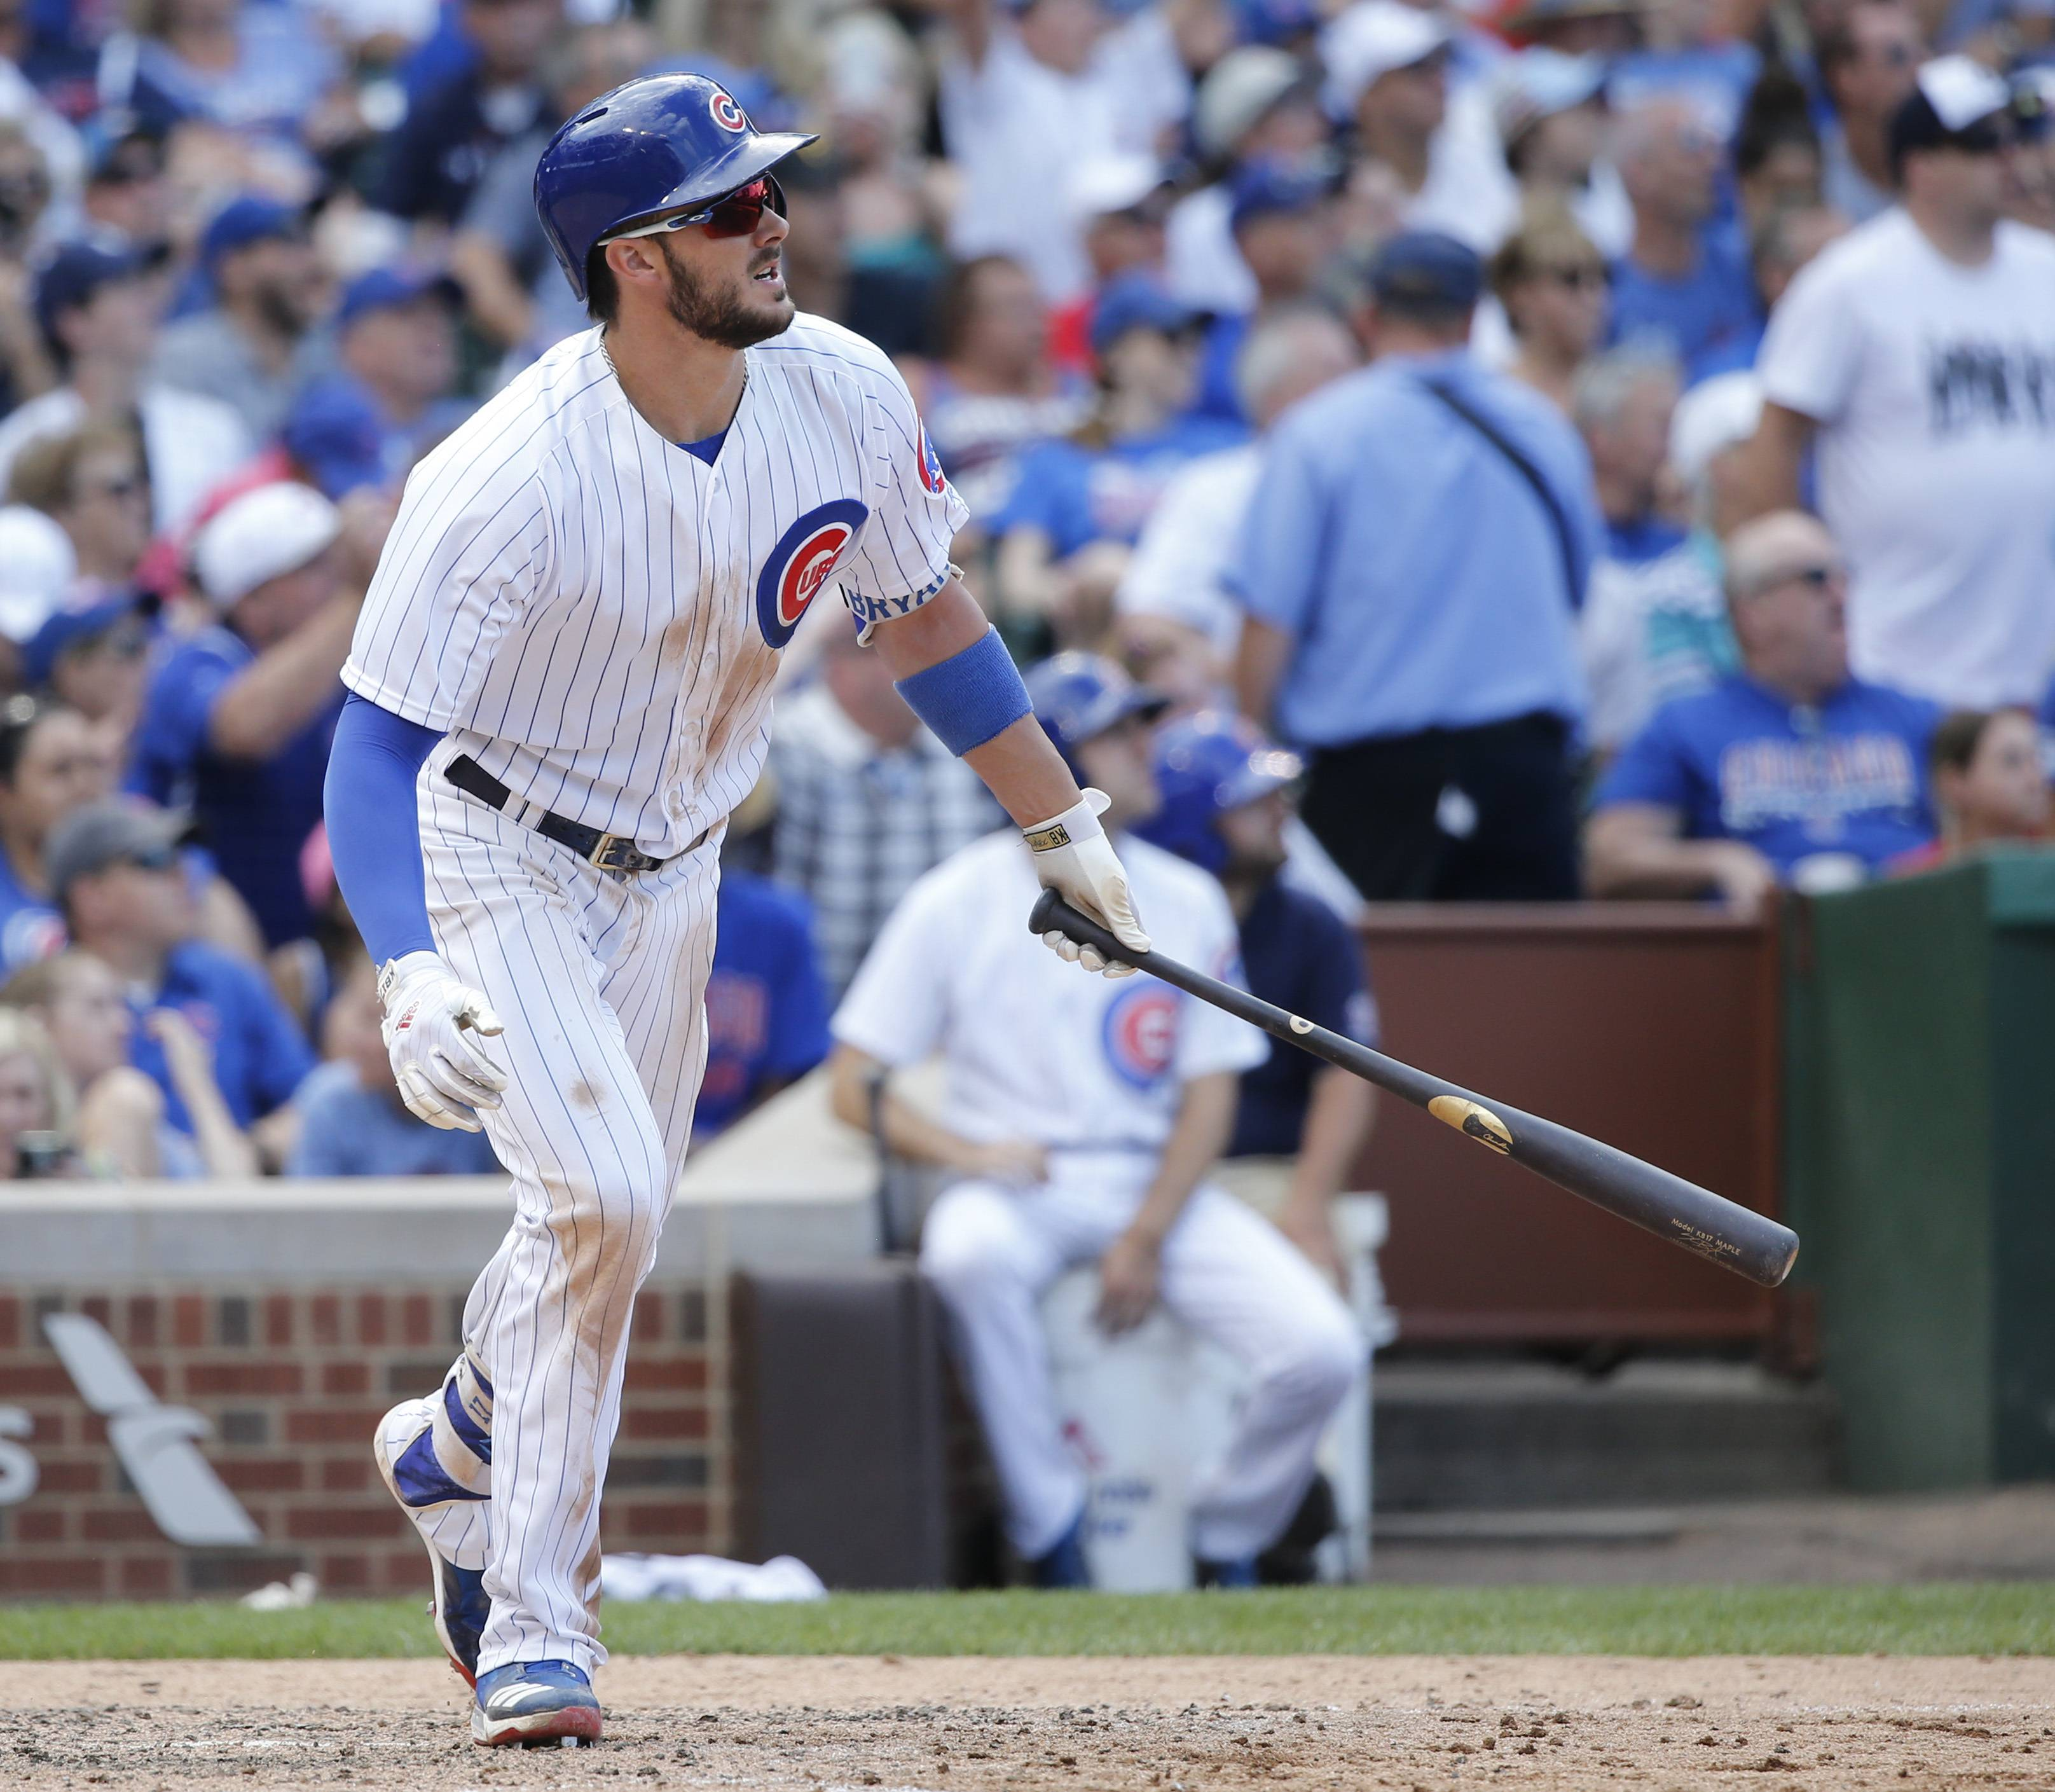 Confident Cubs overcome mistakes to get 6-1 win over Pirates